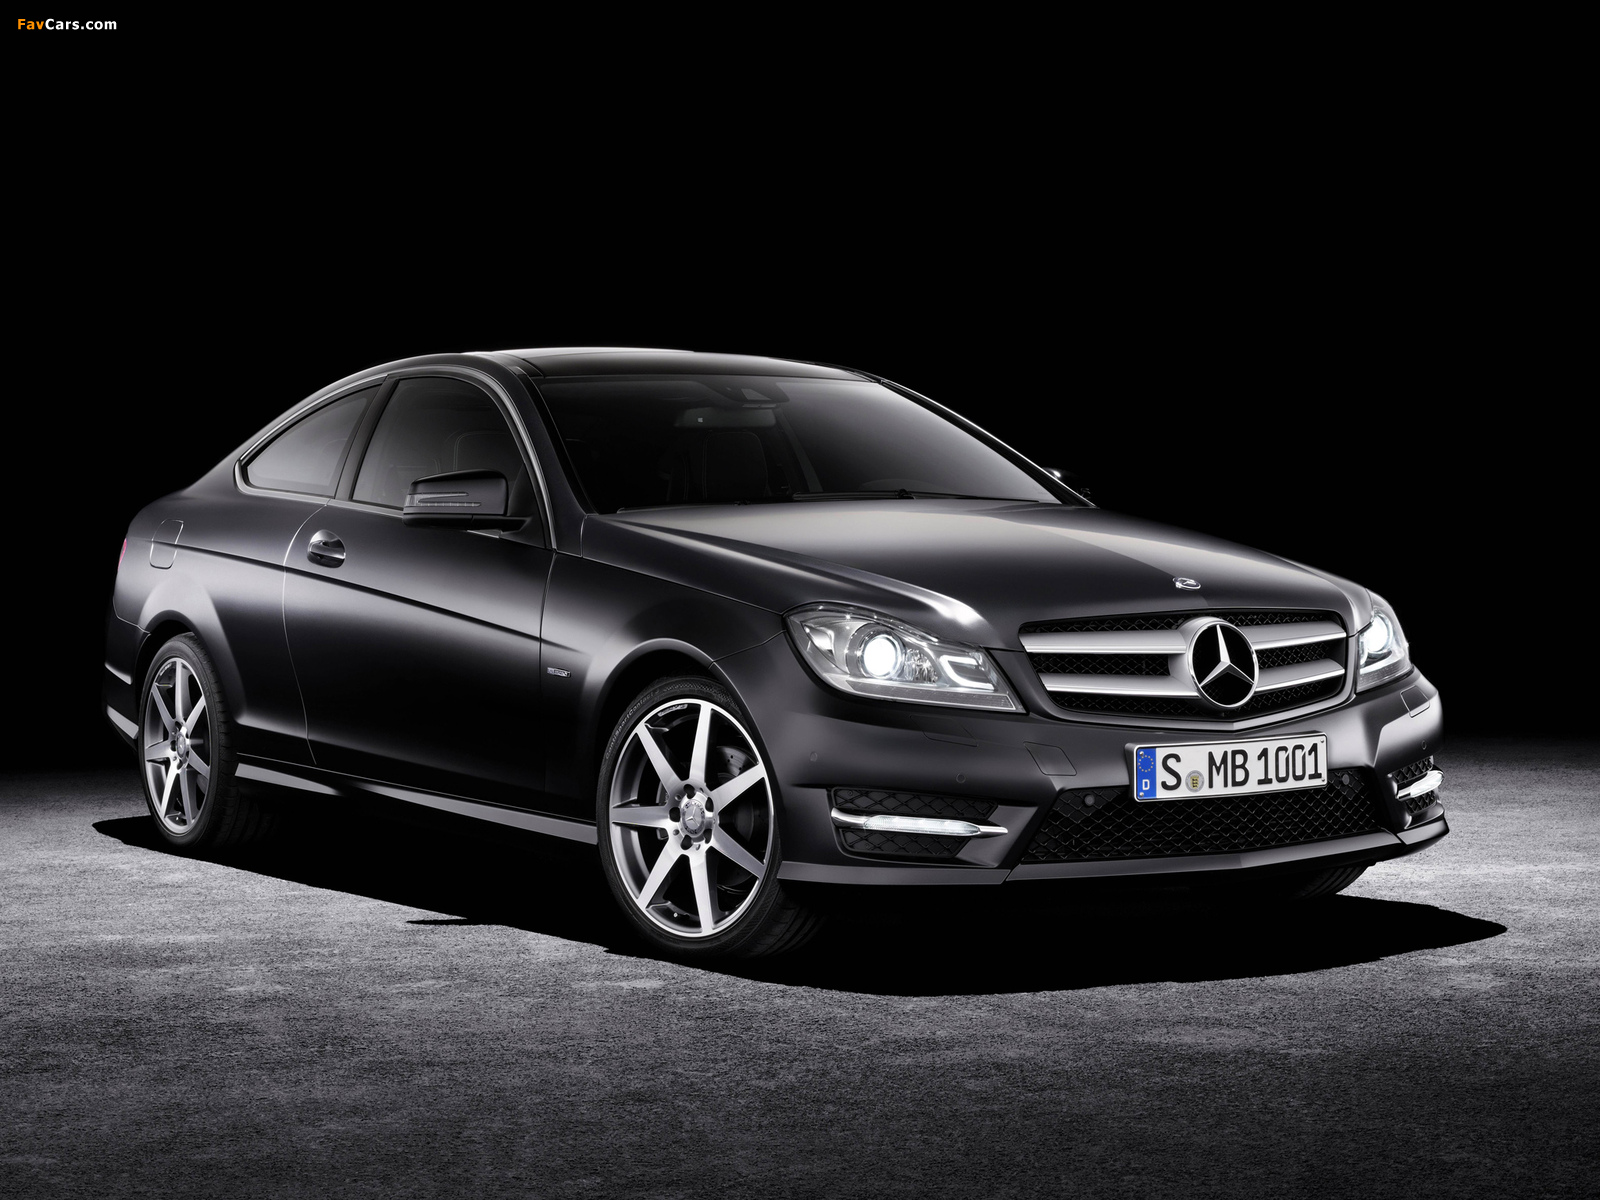 Mercedes-Benz C 250 CDI Coupe (C204) 2011 wallpapers (1600 x 1200)